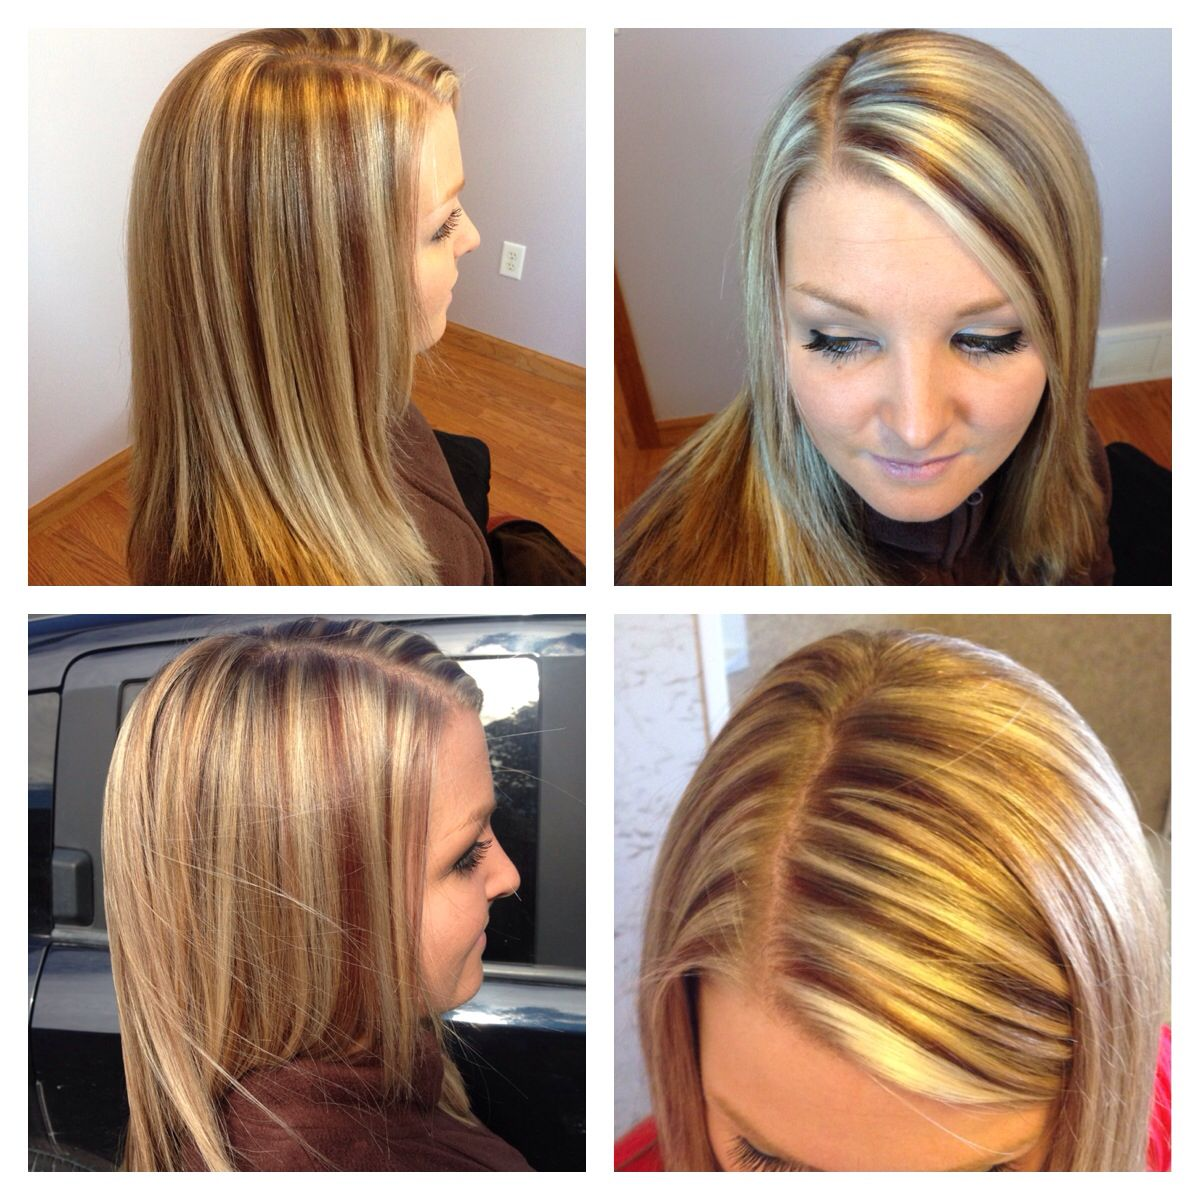 Highlight Lowlight Using Redken Flashlift With 20 Volume And Redken Color Fusions 6br 7bc With